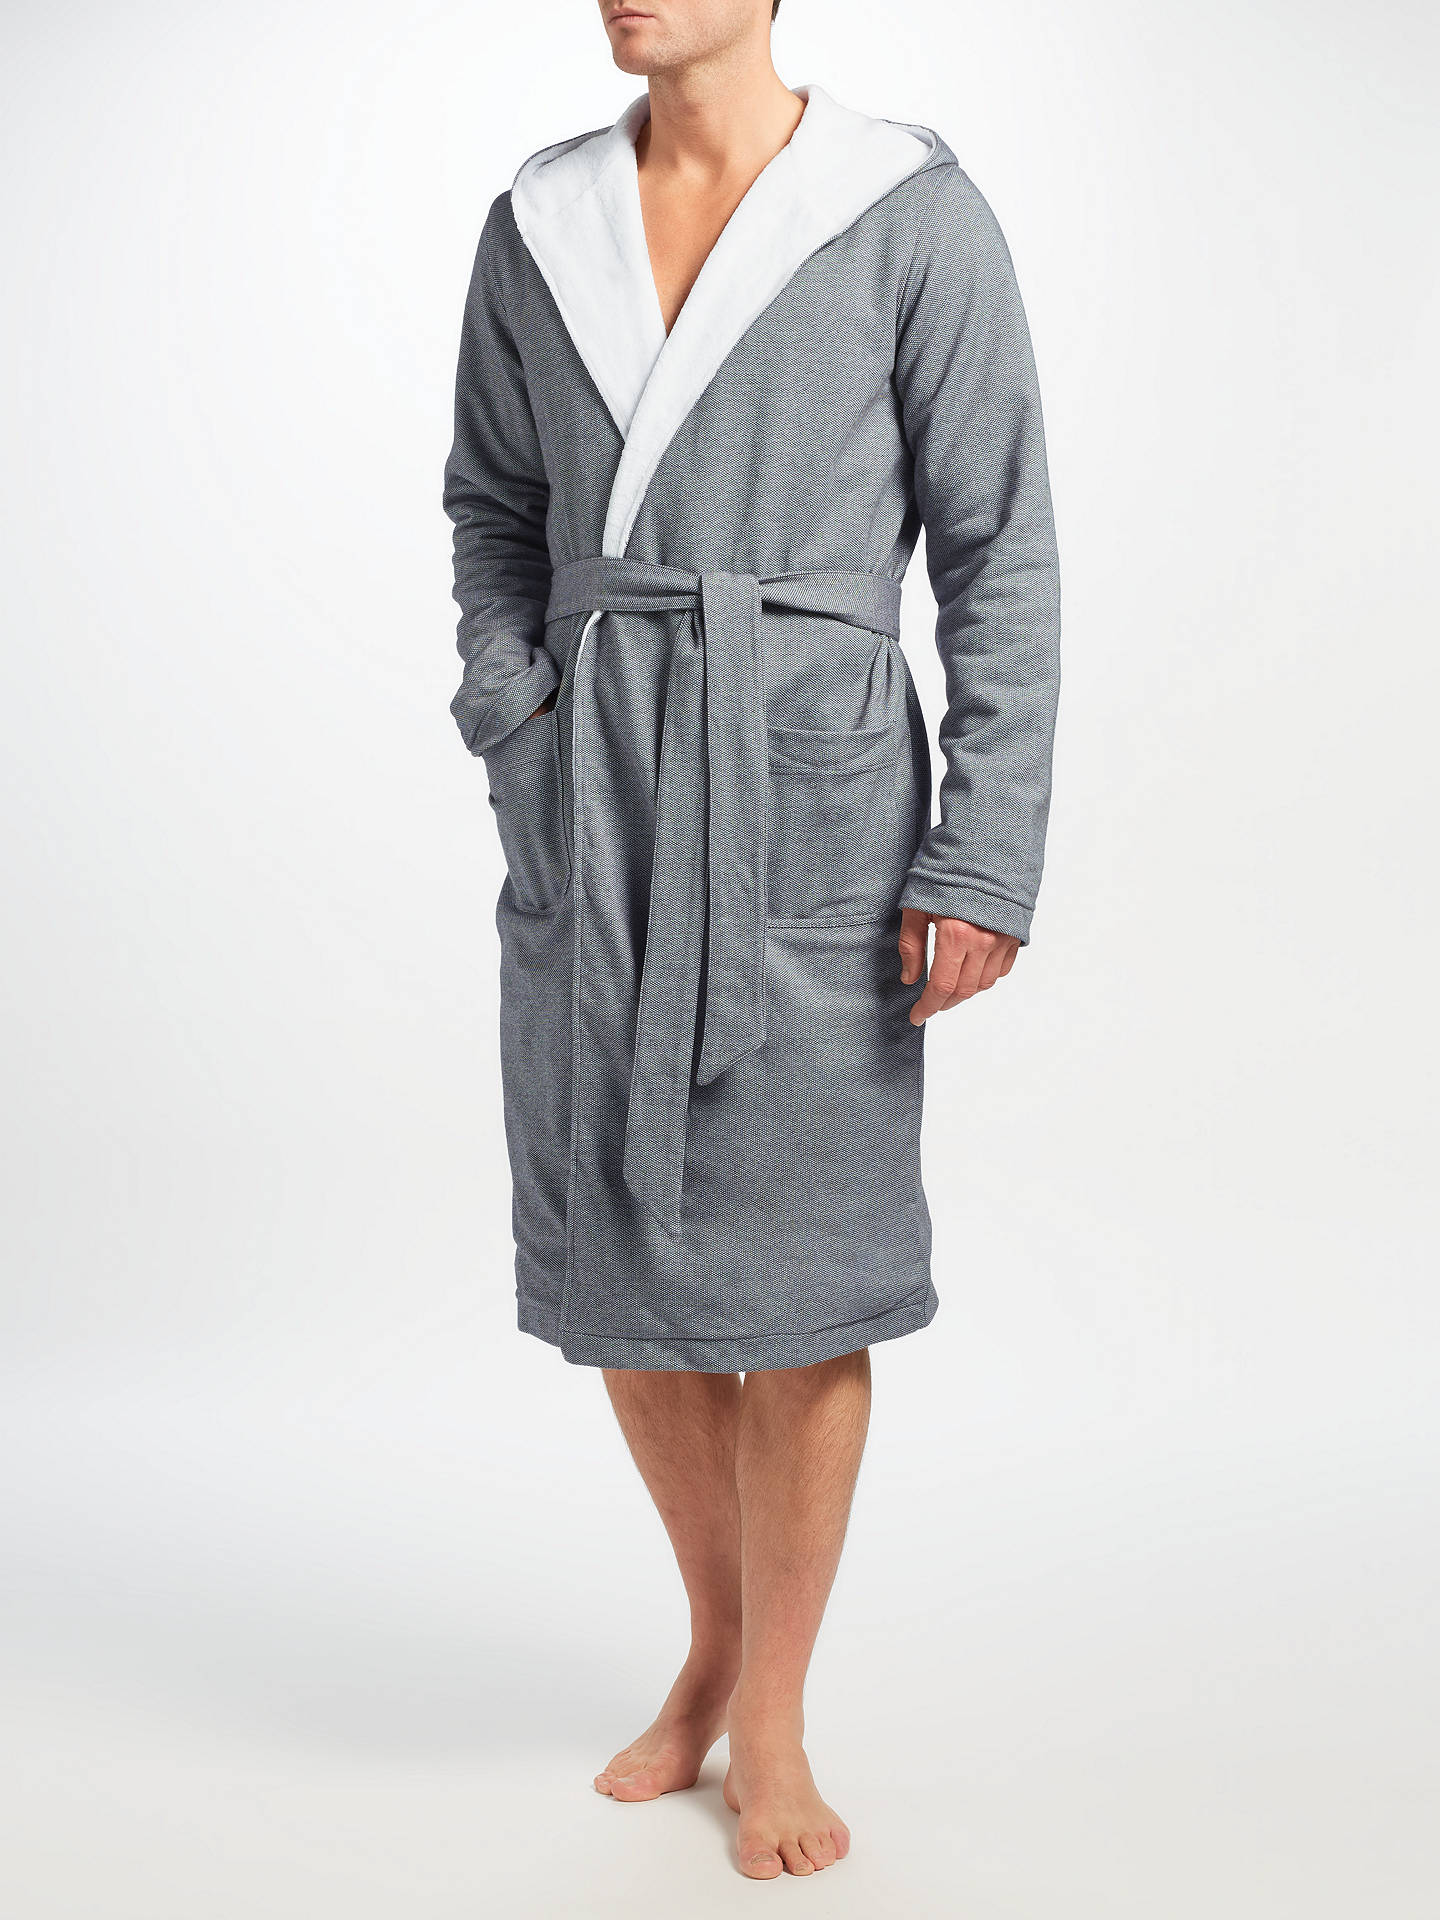 BuyHamilton and Hare Cotton Towelling Boxing Robe 82f0c74c7